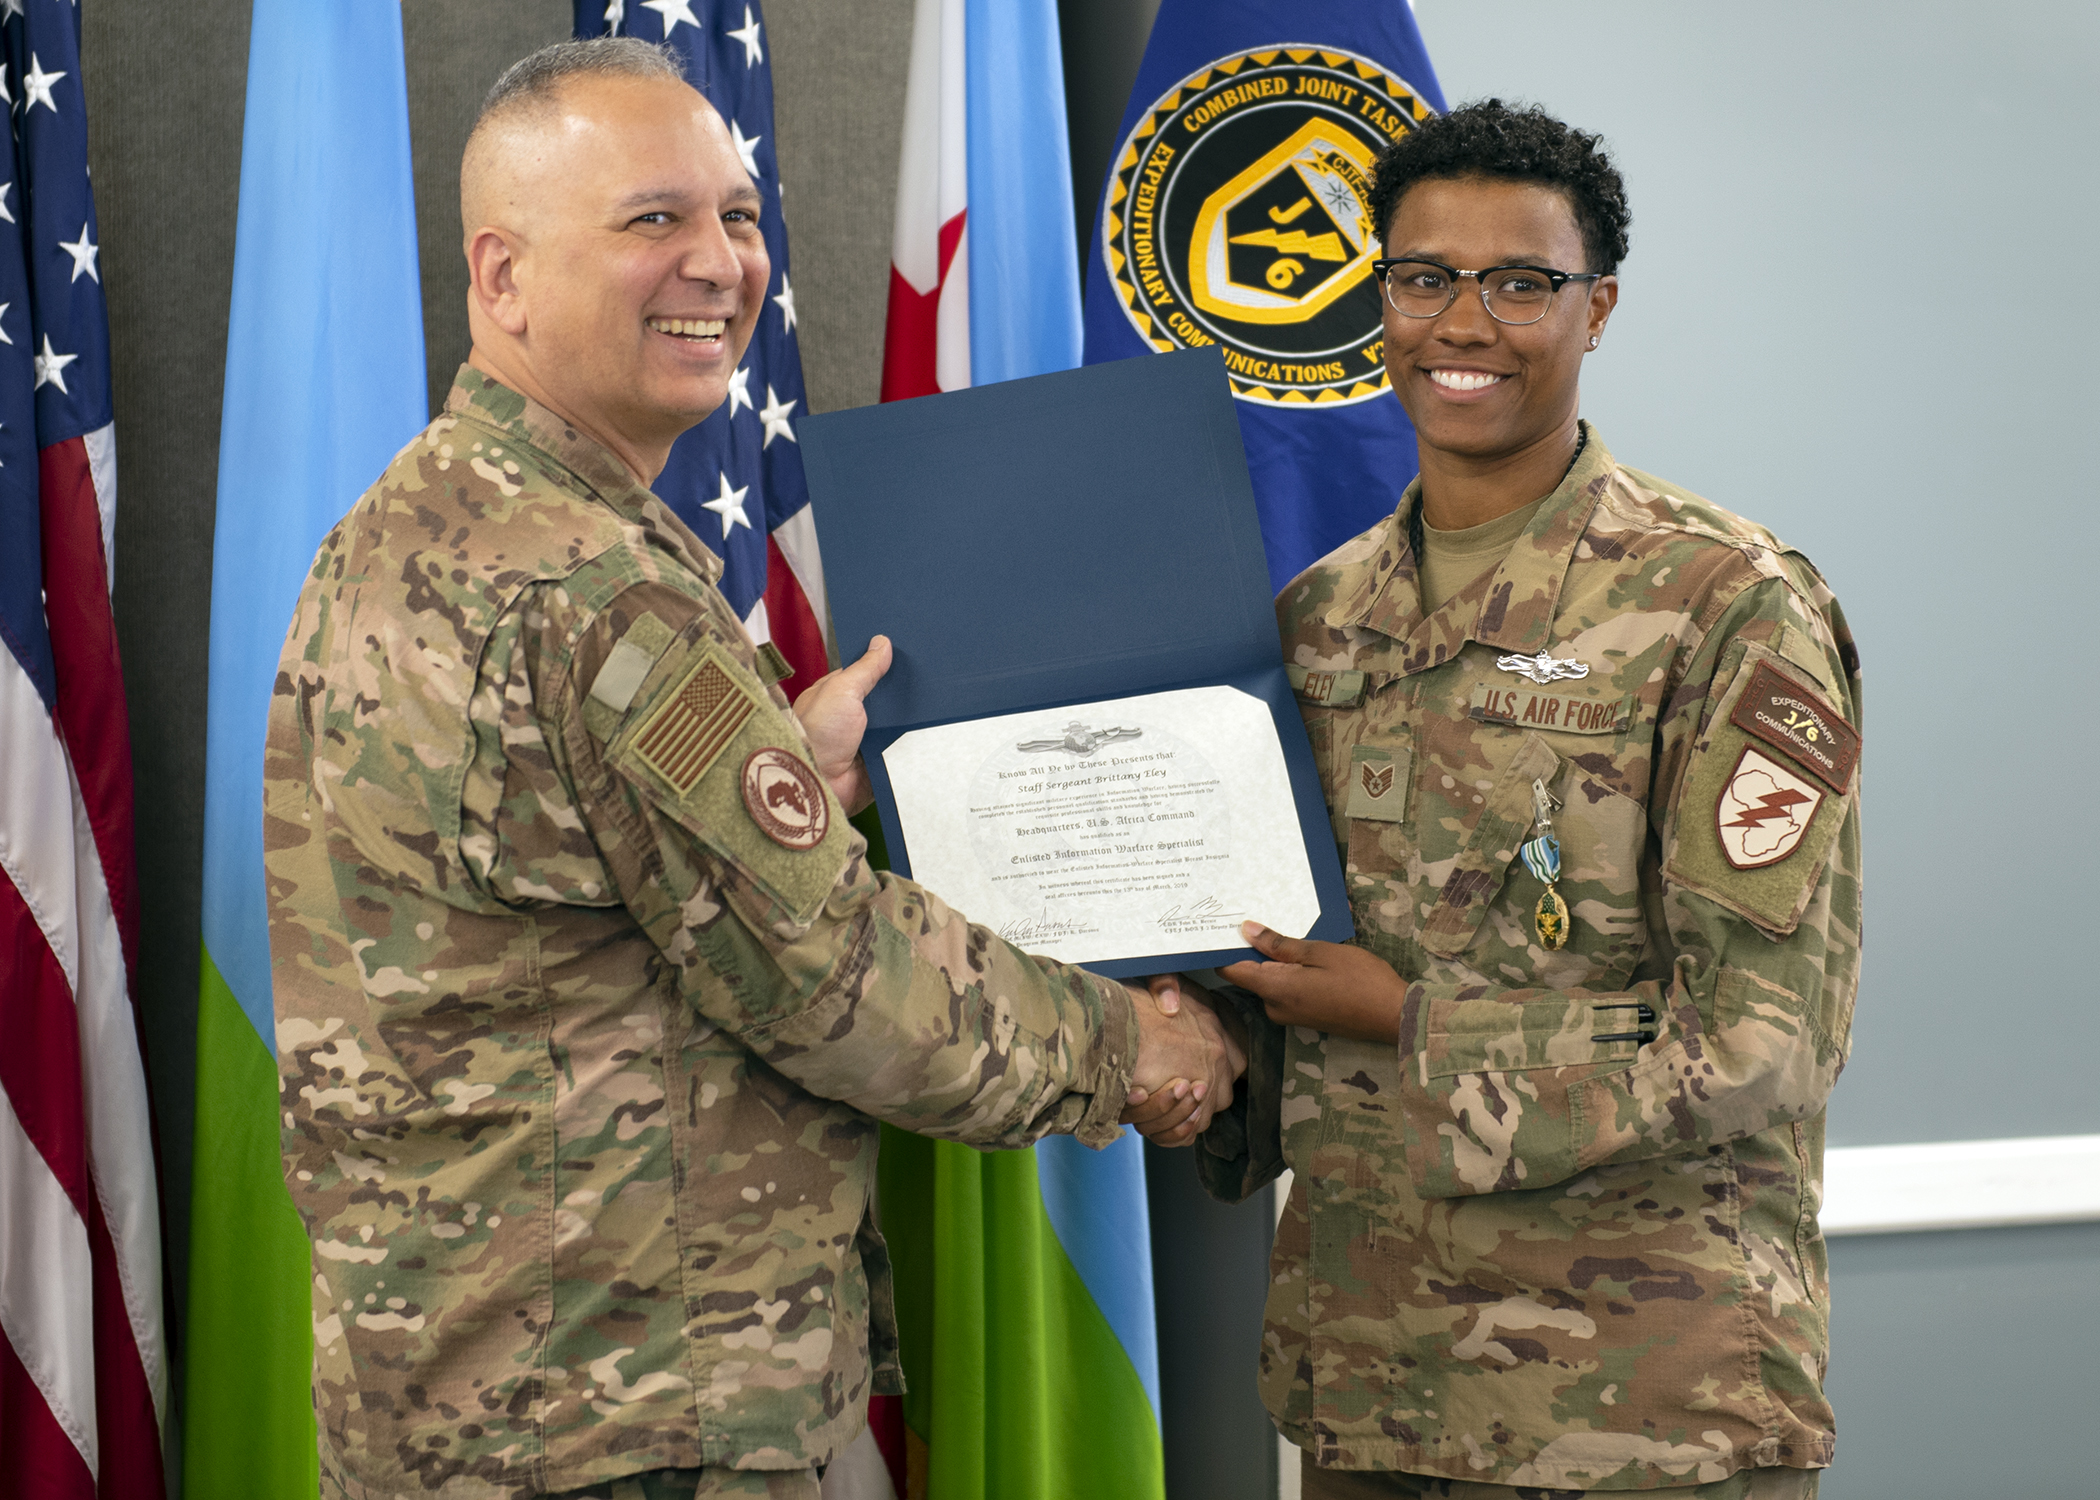 U.S. Air Force Col. Kjäll Gopaul, communications director for Combined Joint Task Force-Horn of Africa (CJTF-HOA), presents a U.S. Navy enlisted information warfare specialist (EIWS) certificate to U.S. Air Force Staff Sgt. Brittany Eley, Joint Network Control Center team lead assigned to CJTF-HOA, at Camp Lemonnier, Djibouti, April 1, 2019. Eley has been recognized as the first sister-service EIWS in CJTF-HOA, which signifies that an eligible Sailor has achieved a level of excellence and proficiency in their rating. (U.S. Air Force photo by Master Sgt. Amanda Currier)